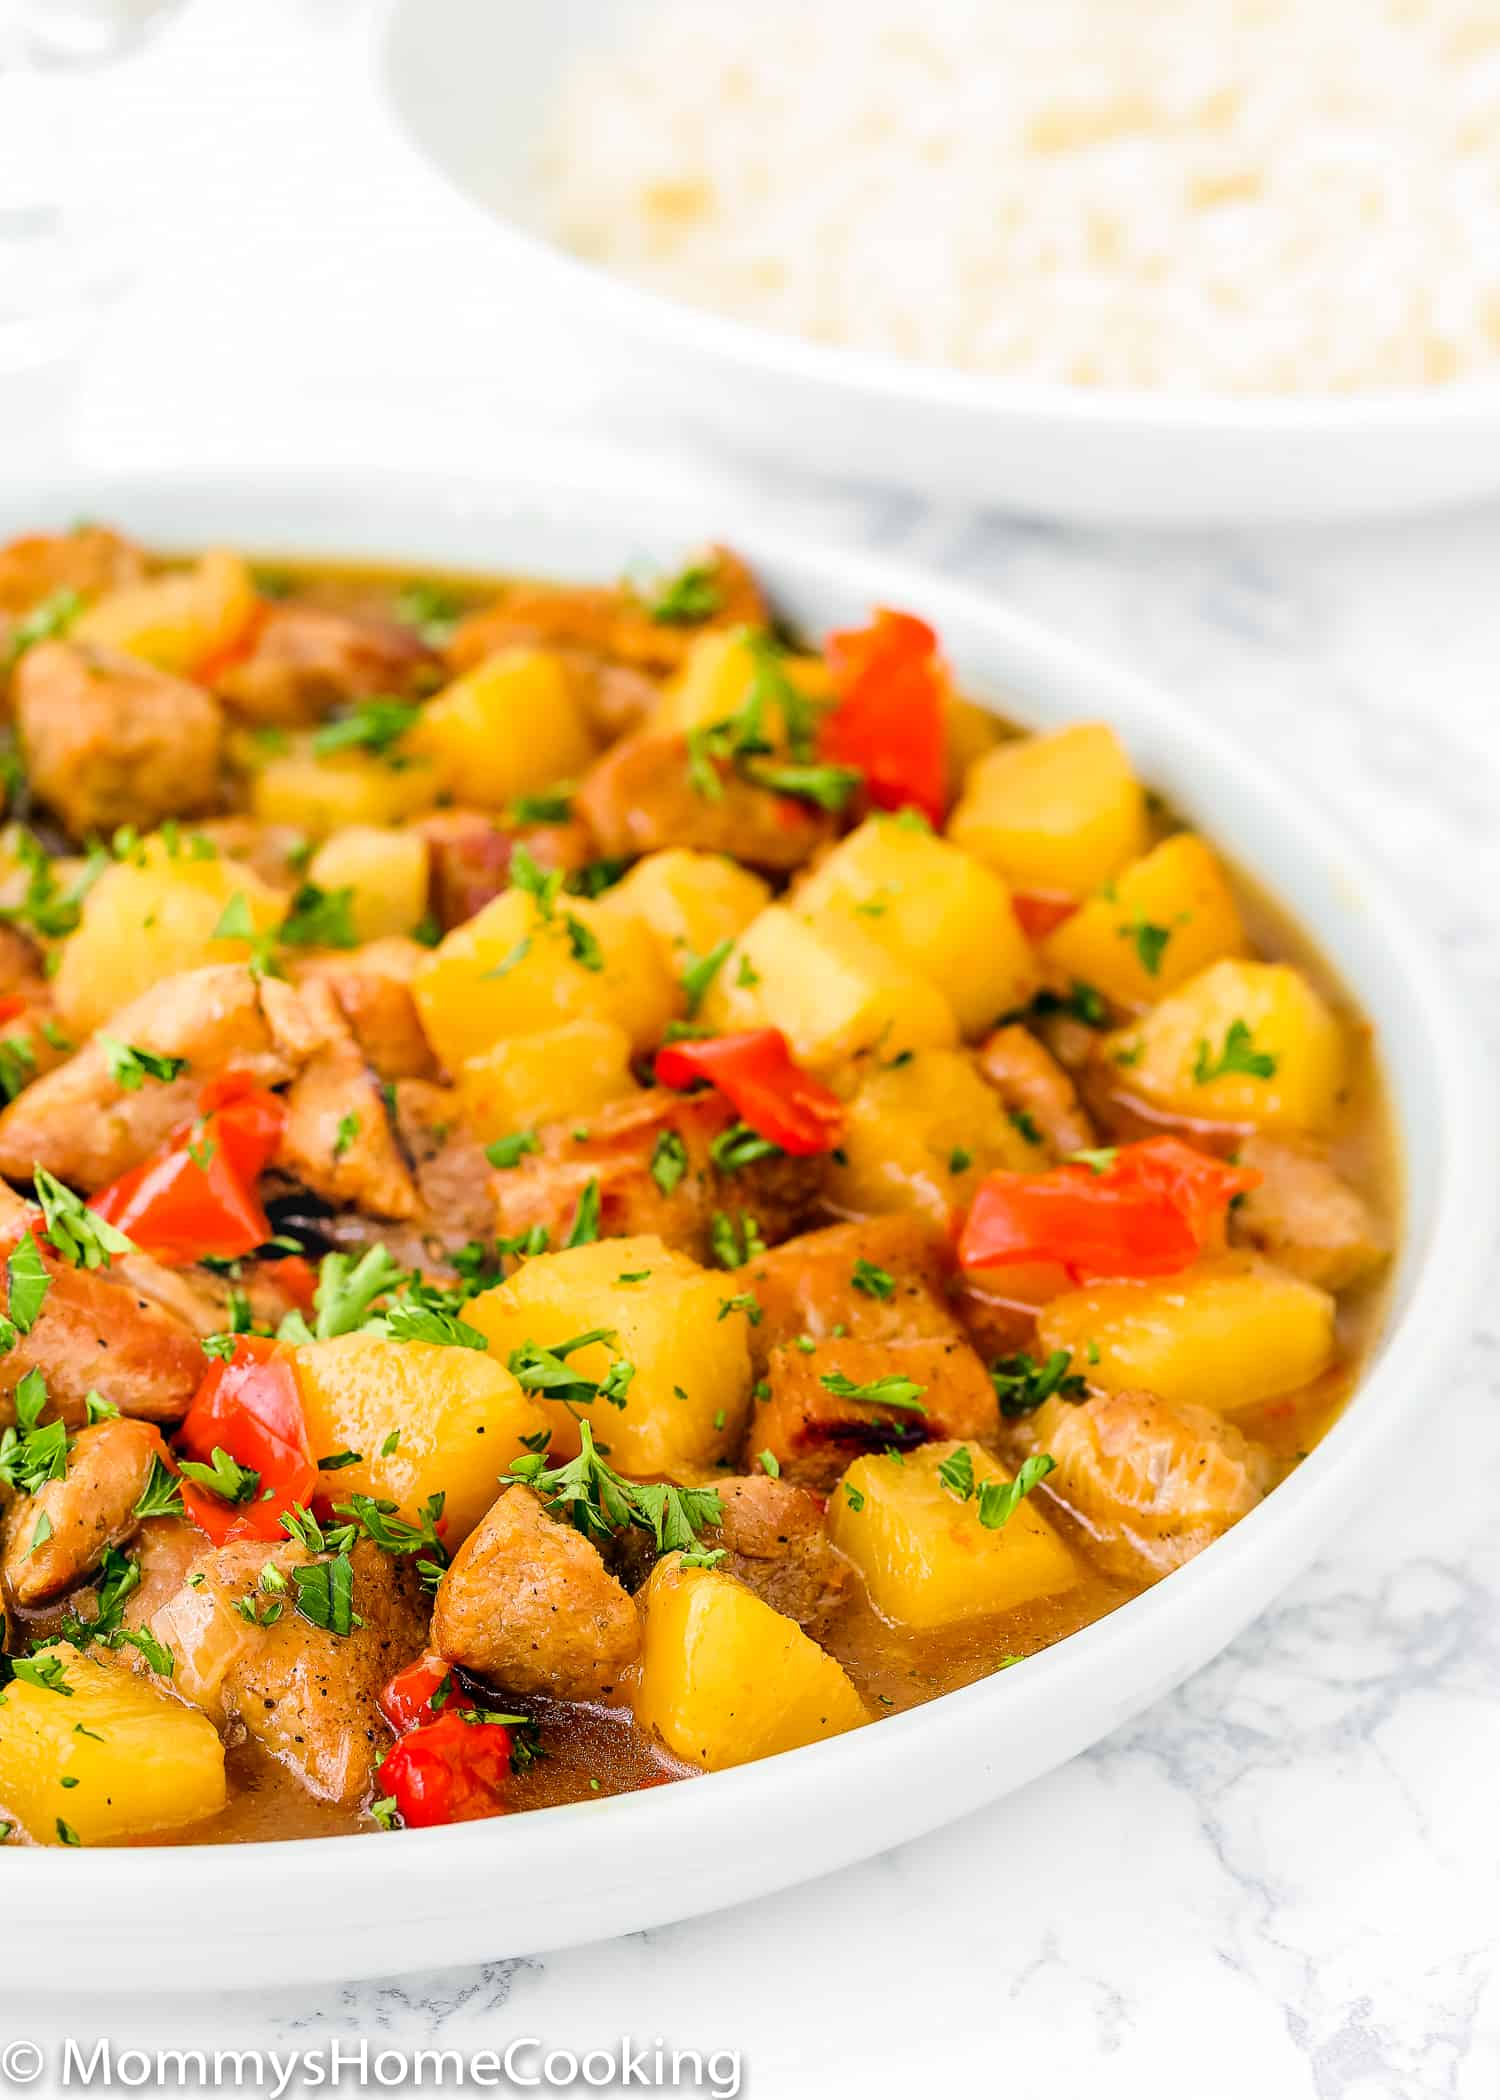 This Instant Pot Hawaiian Pineapple Pork recipe is a quick and easy dish that is perfect for busy weeknights. It's out of this world delicious. Smoky, sweet, salty and tangy. Best of all...this dish is ready in under 30 minutes! https://mommyshomecooking.com